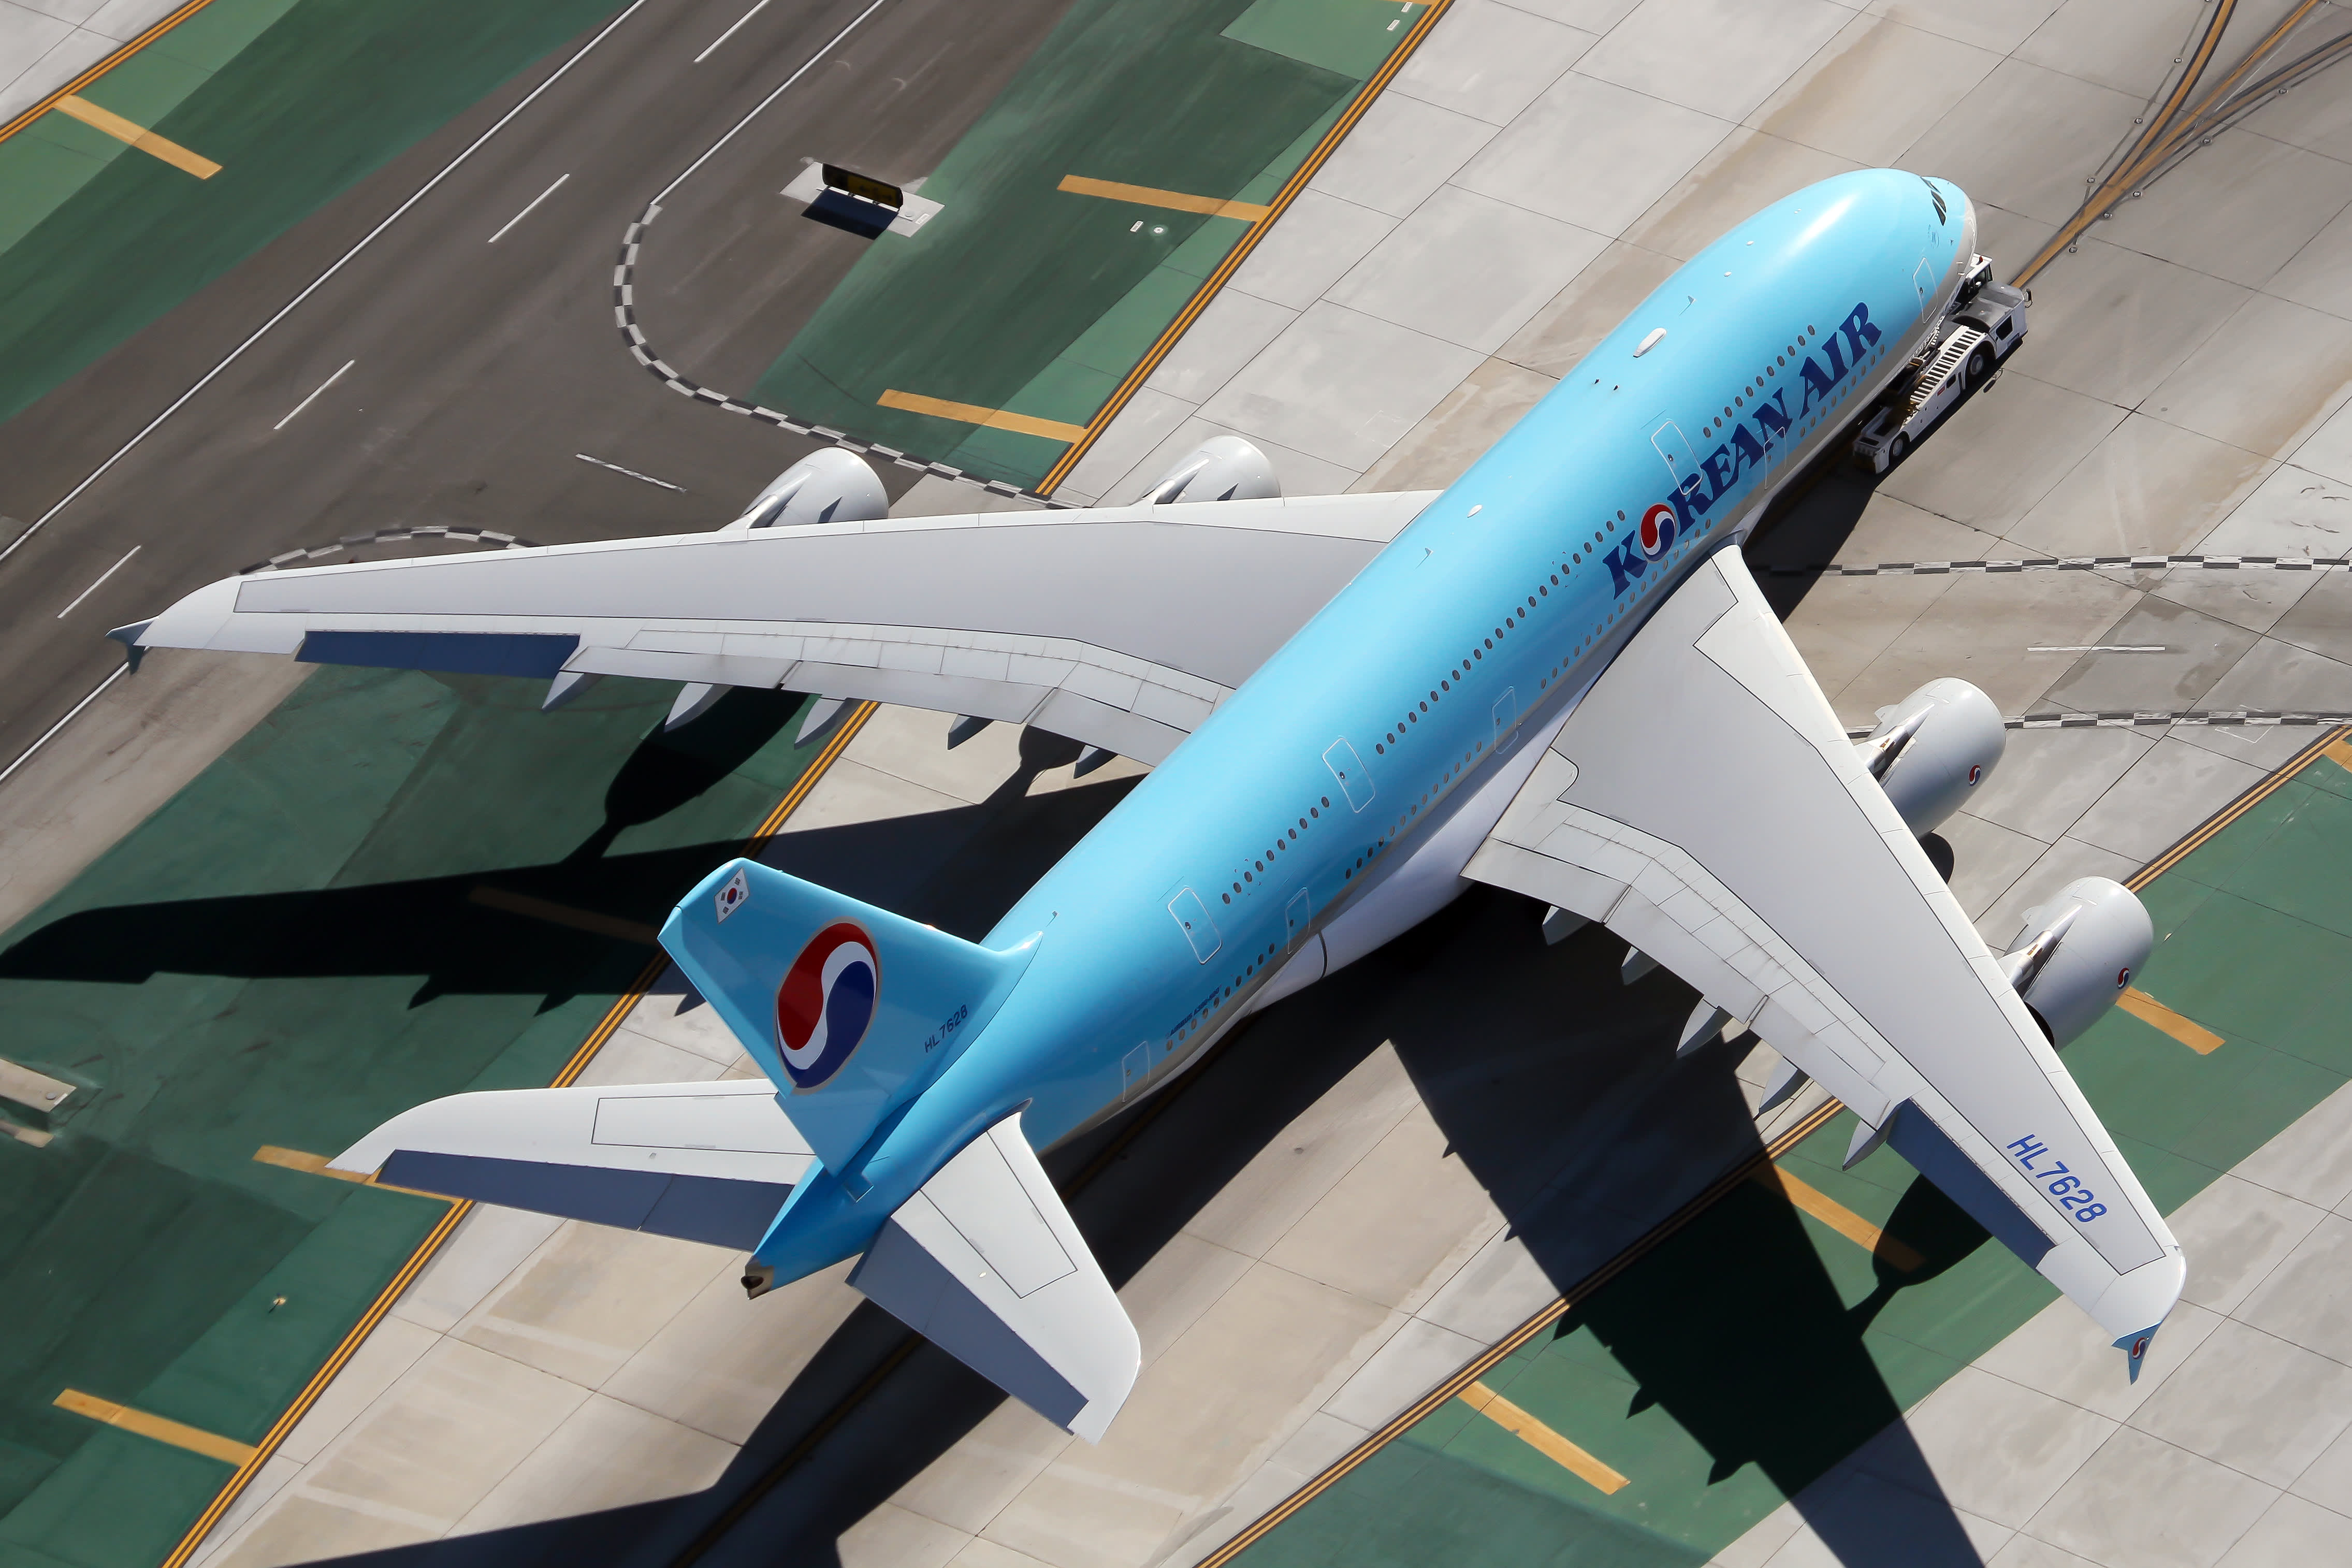 Among companies getting millions in PPP loans: Korean Air